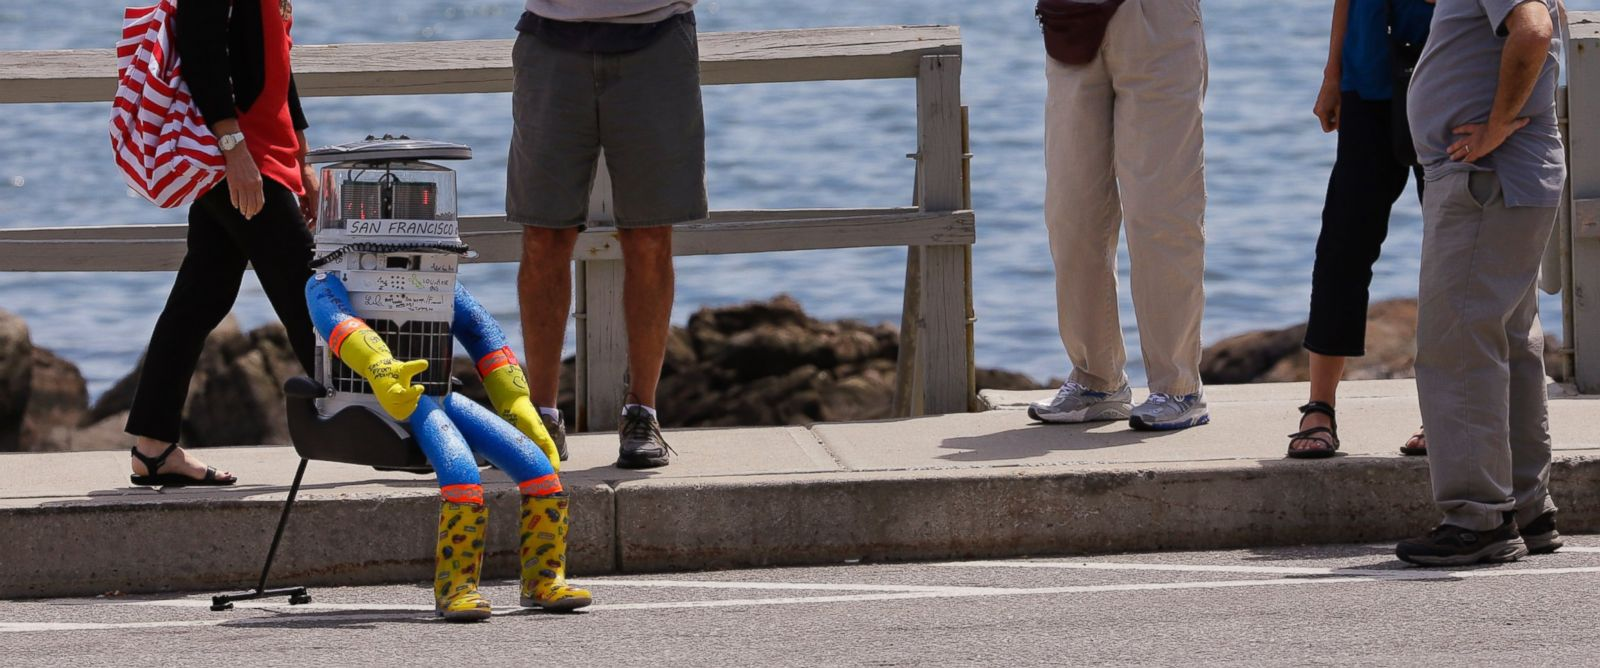 Good Morning America Robot : The world mourns hitchbot hitchhiking robot abc news